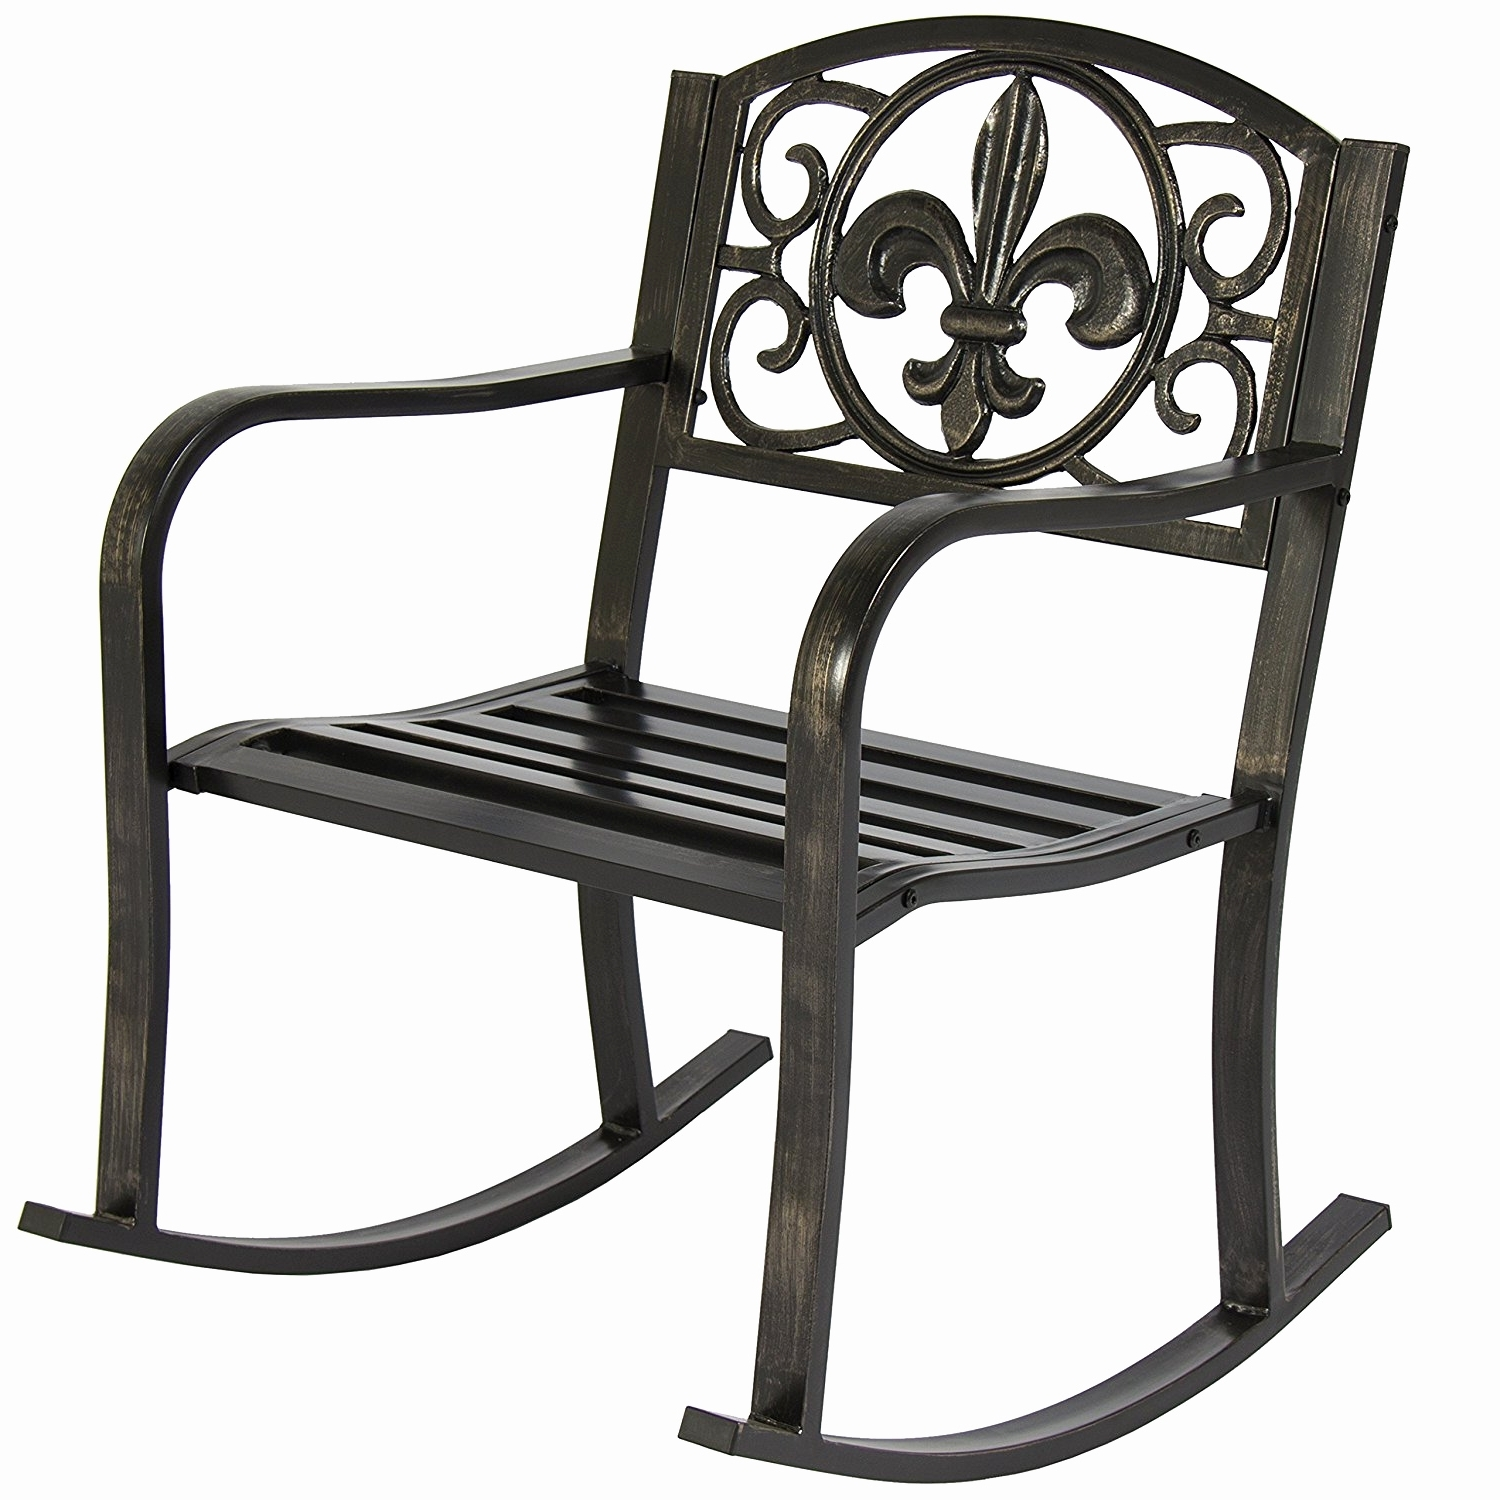 20 Best Collection Of Iron Rocking Patio Chairs